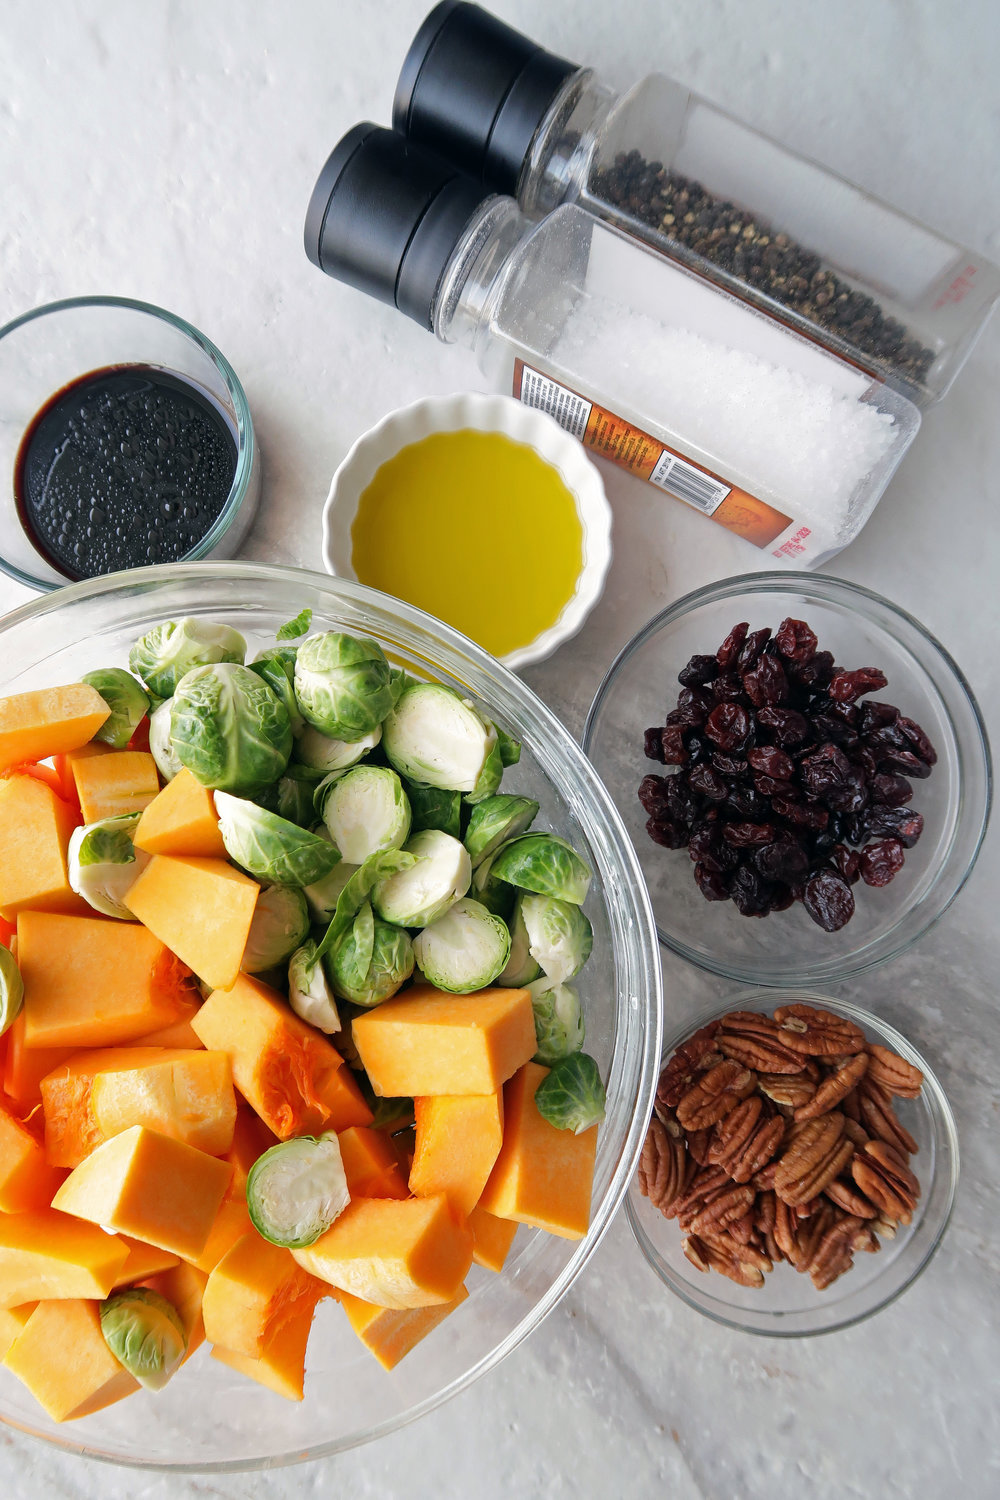 Chopped butternut squash, Brussels sprouts, pecans, dried cherries, balsamic vinegar, and oil in individual bowls.